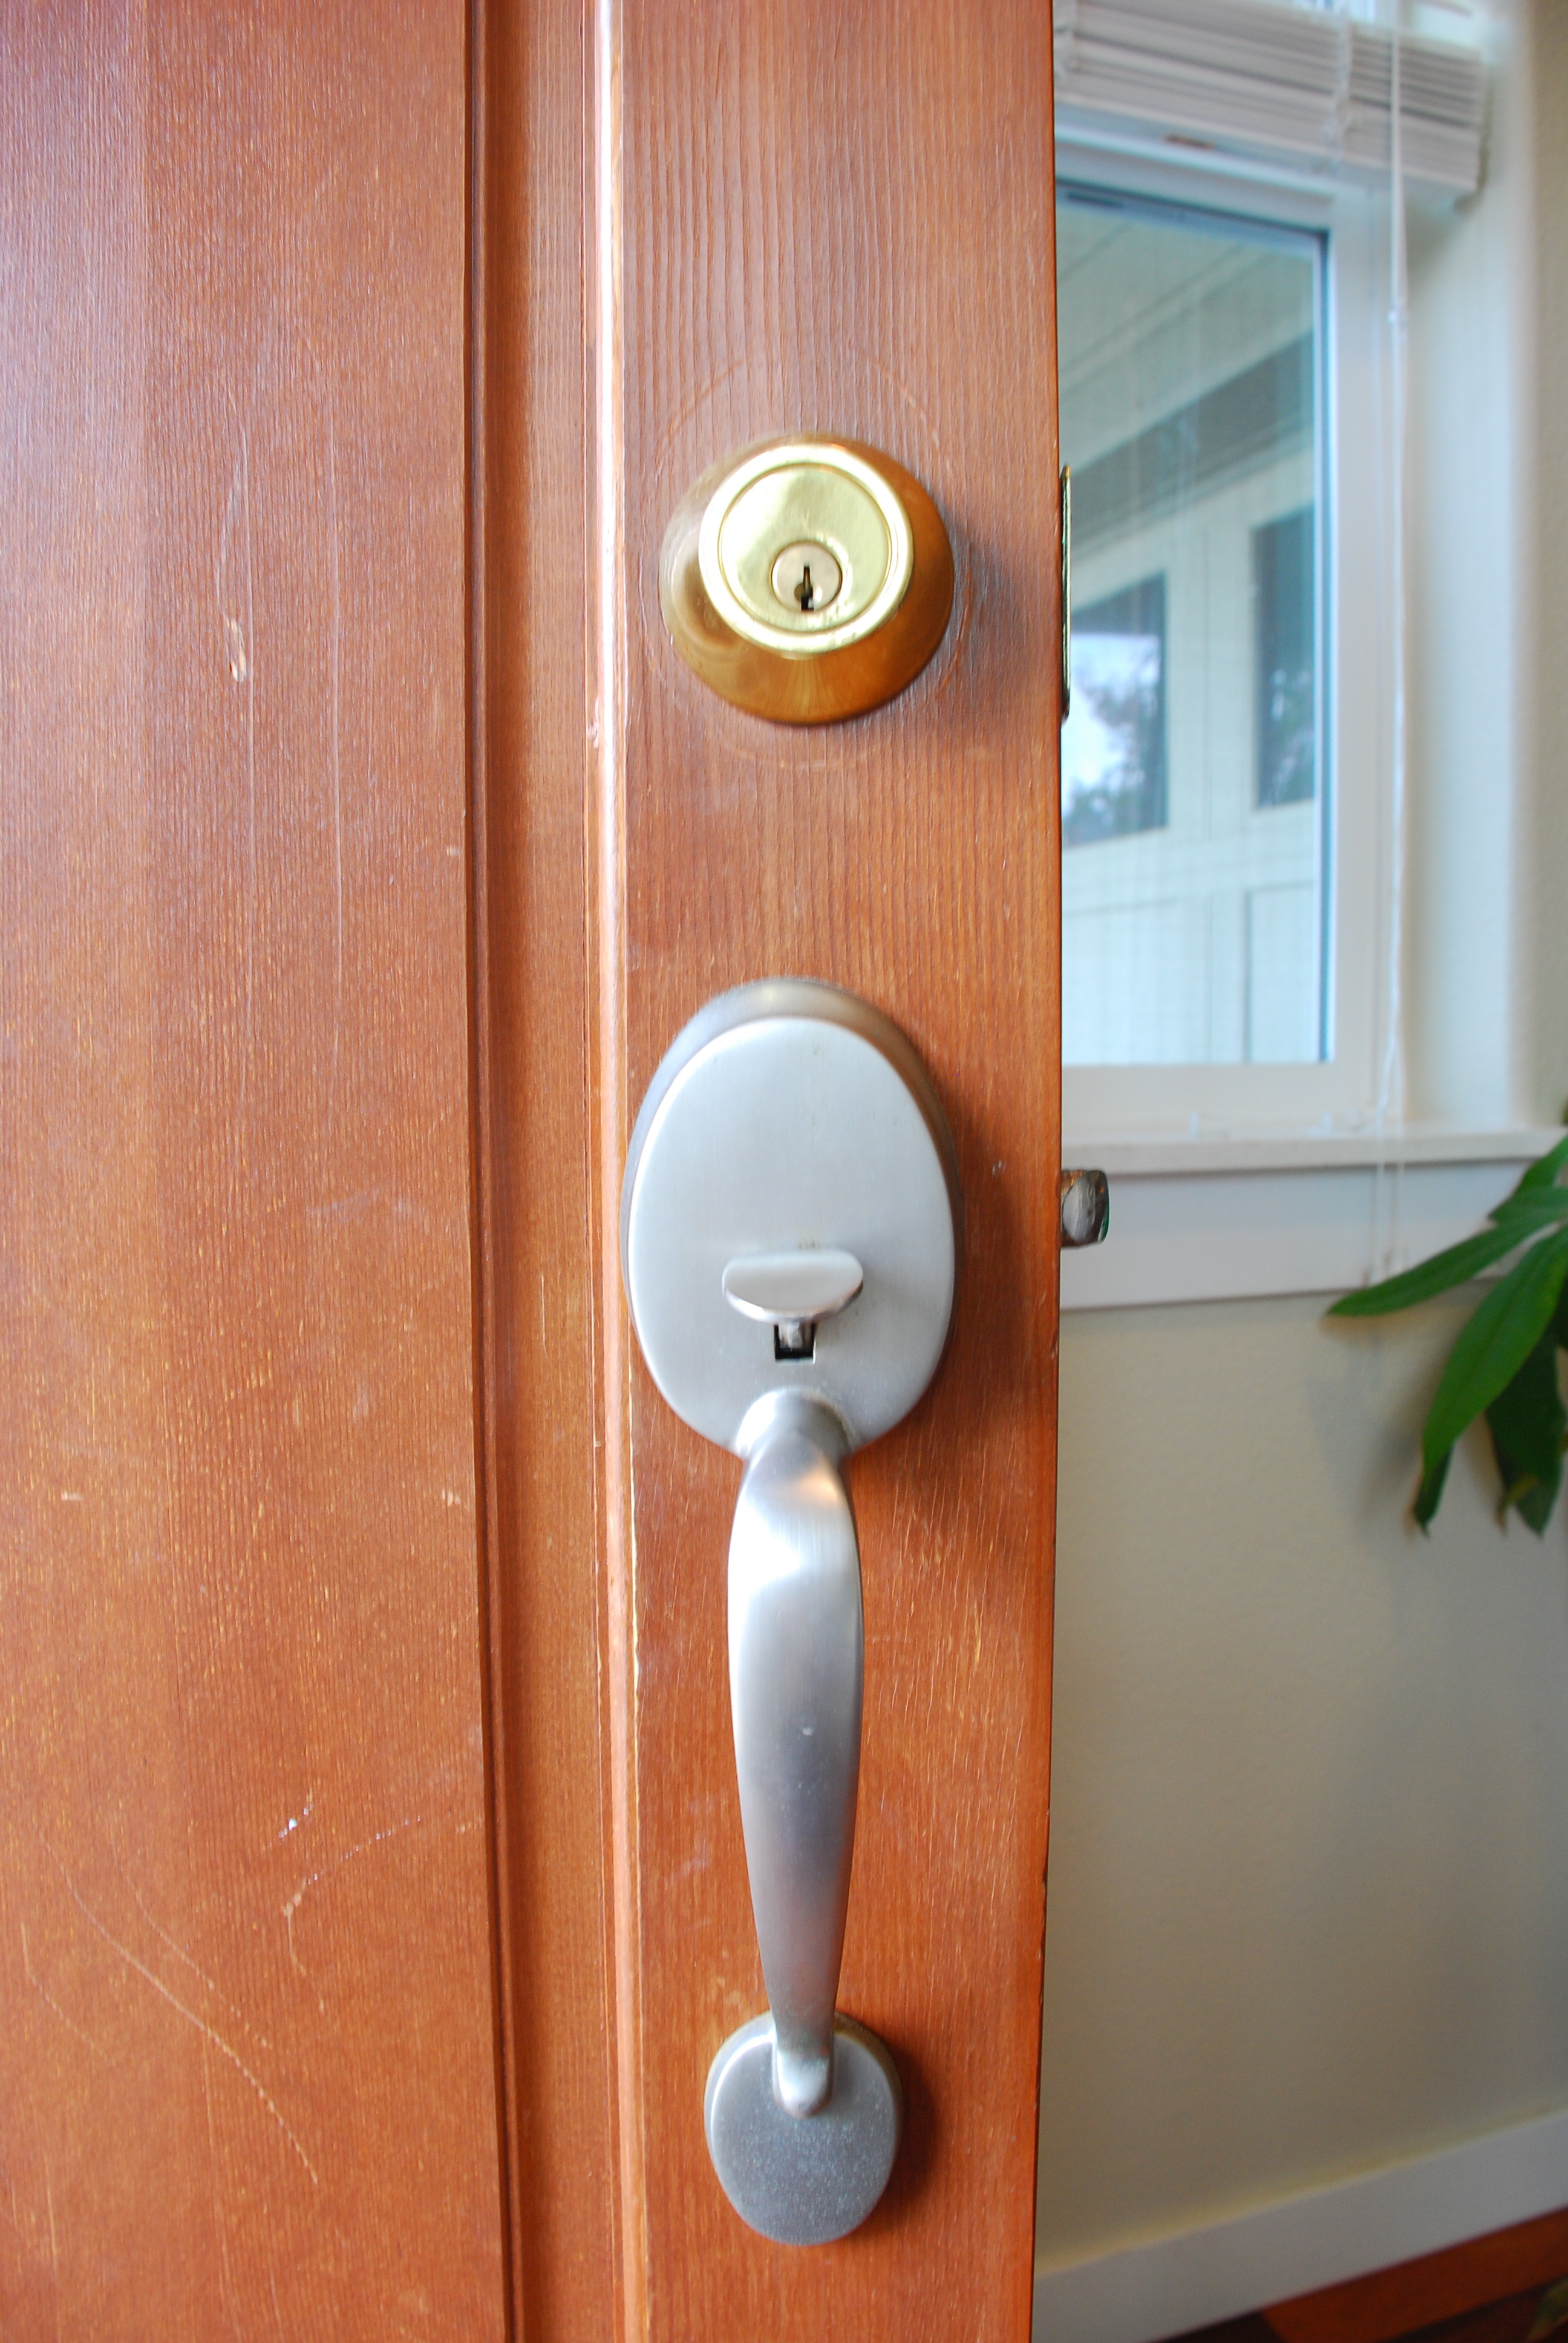 301 moved permanently for Exterior door handles